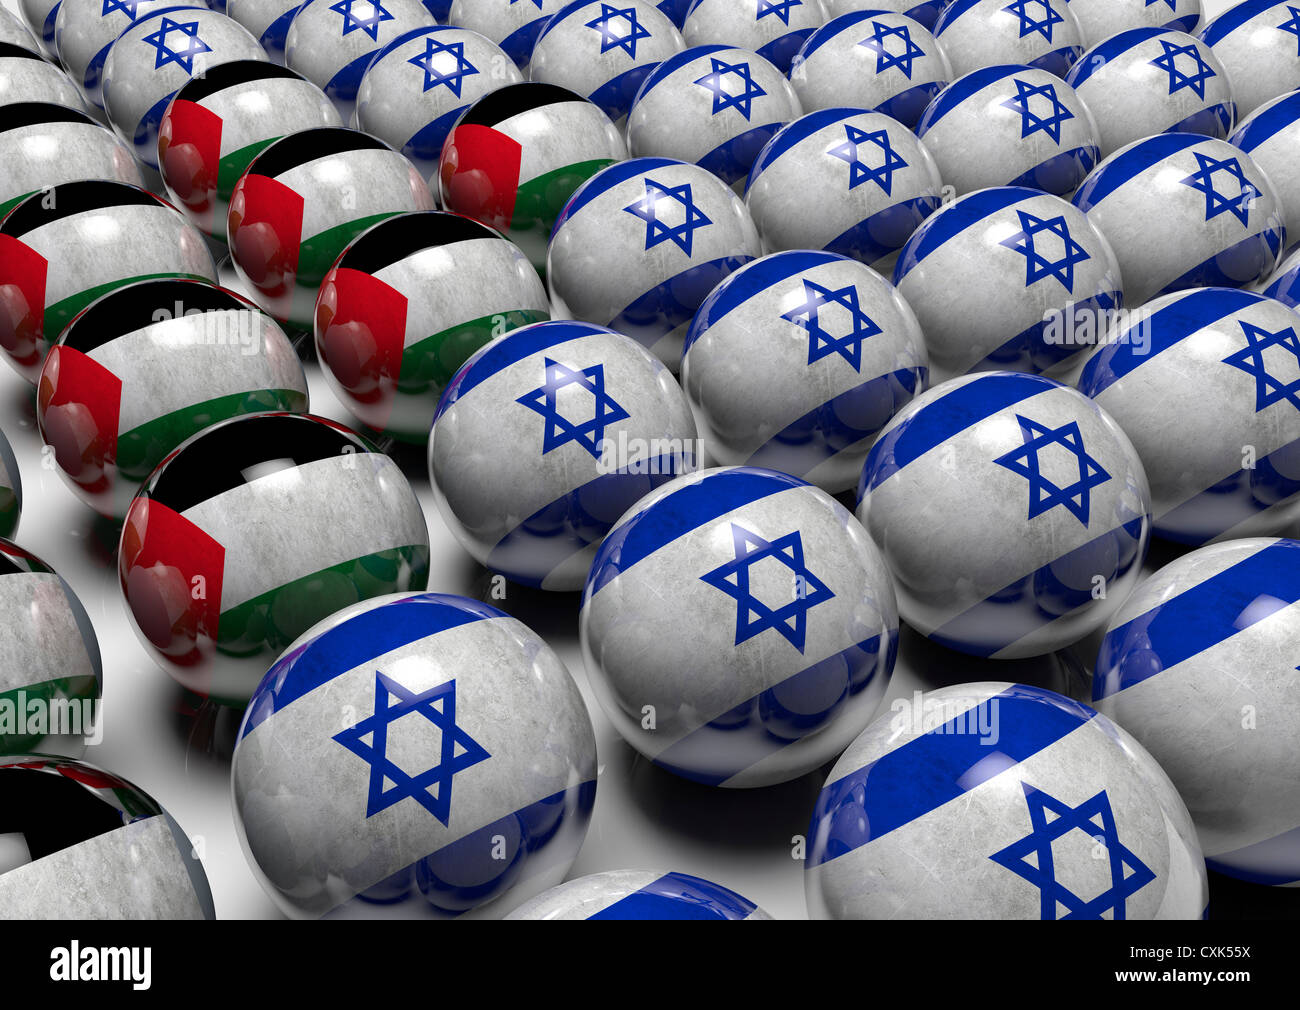 ISRAELI PALESTINIAN Balance of Power between ISRAEL and PALESTINE - Concept - Stock Image